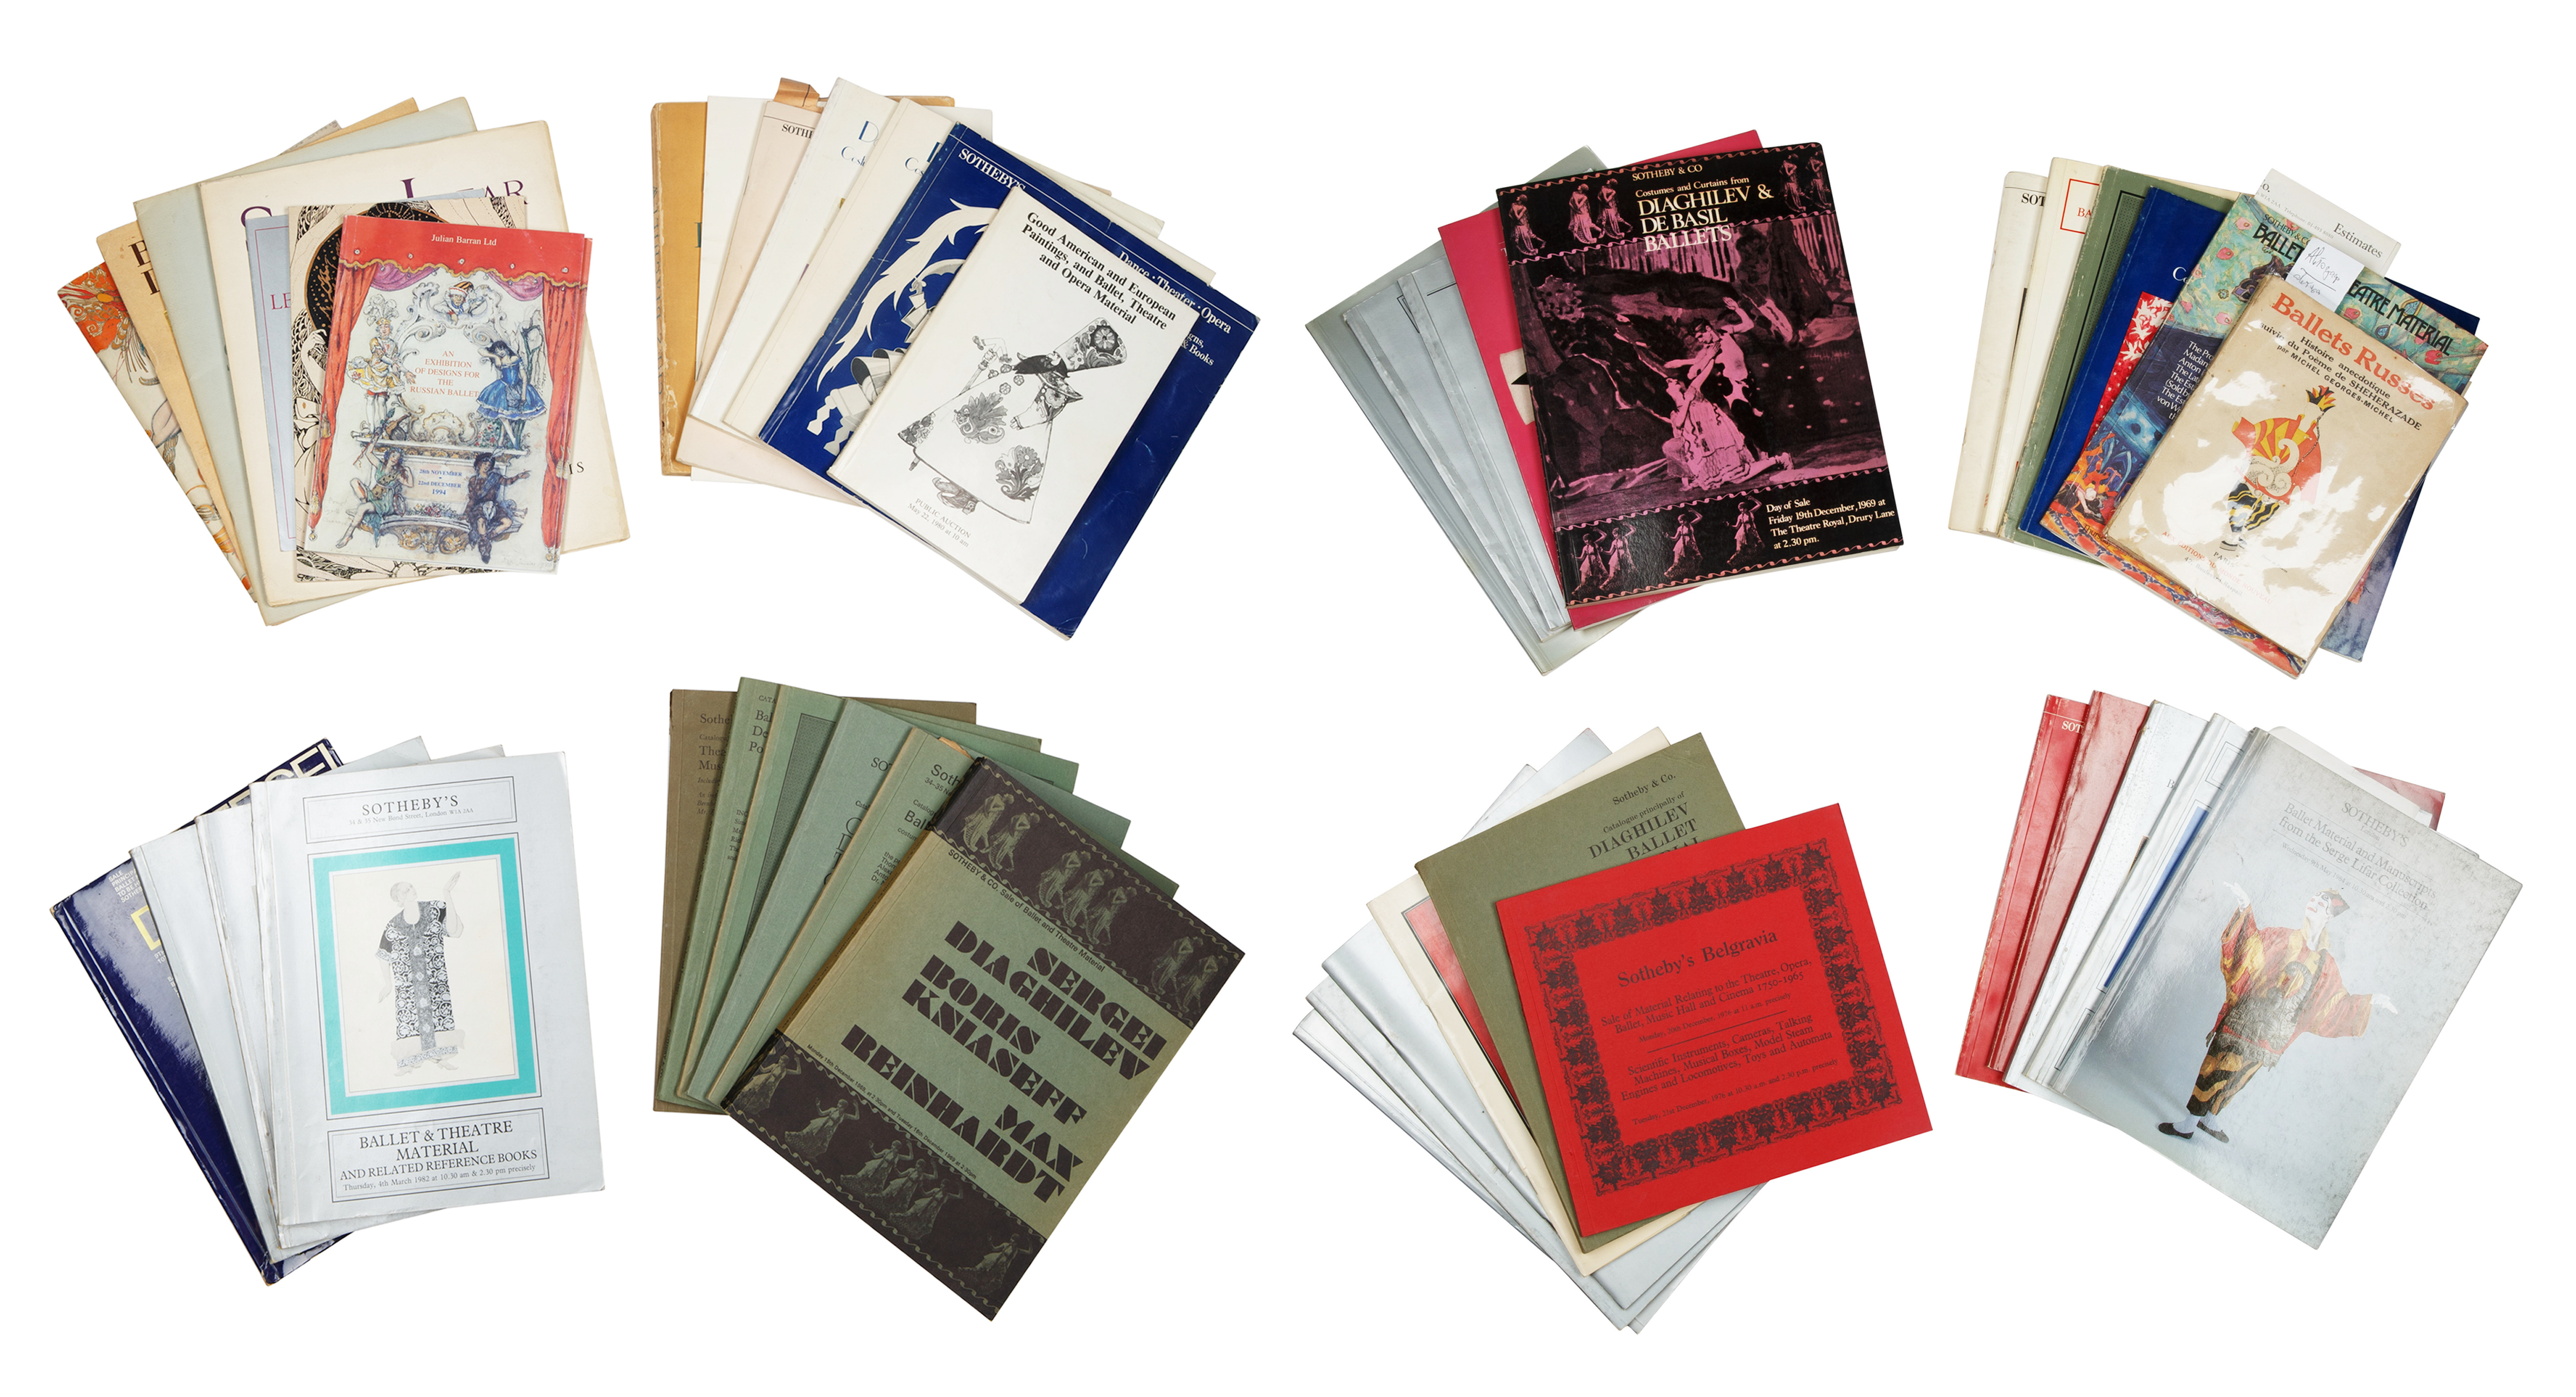 A GROUP OF 46 BALLET RUSSE AUCTION CATALOGUES AND BOOKS